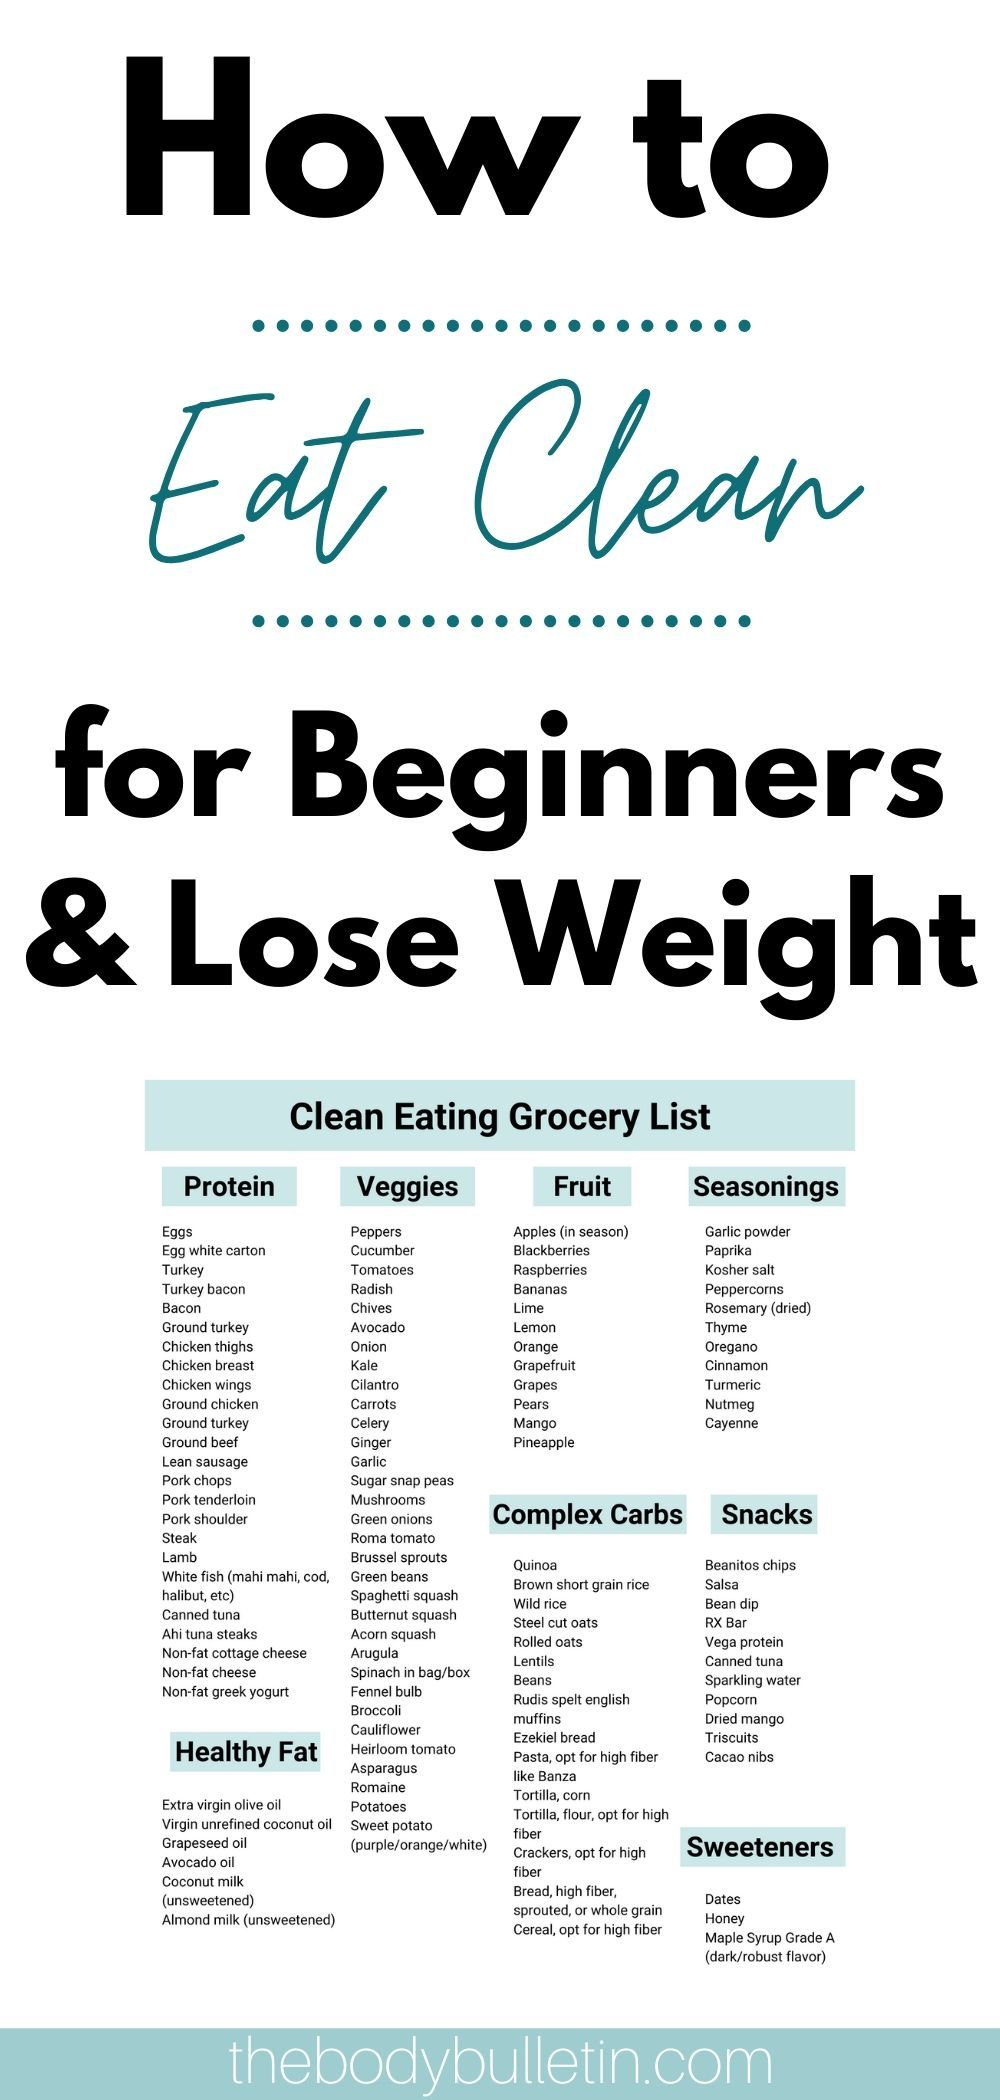 How to Eat Clean for Beginners Losing Weight • The Body Bulletin